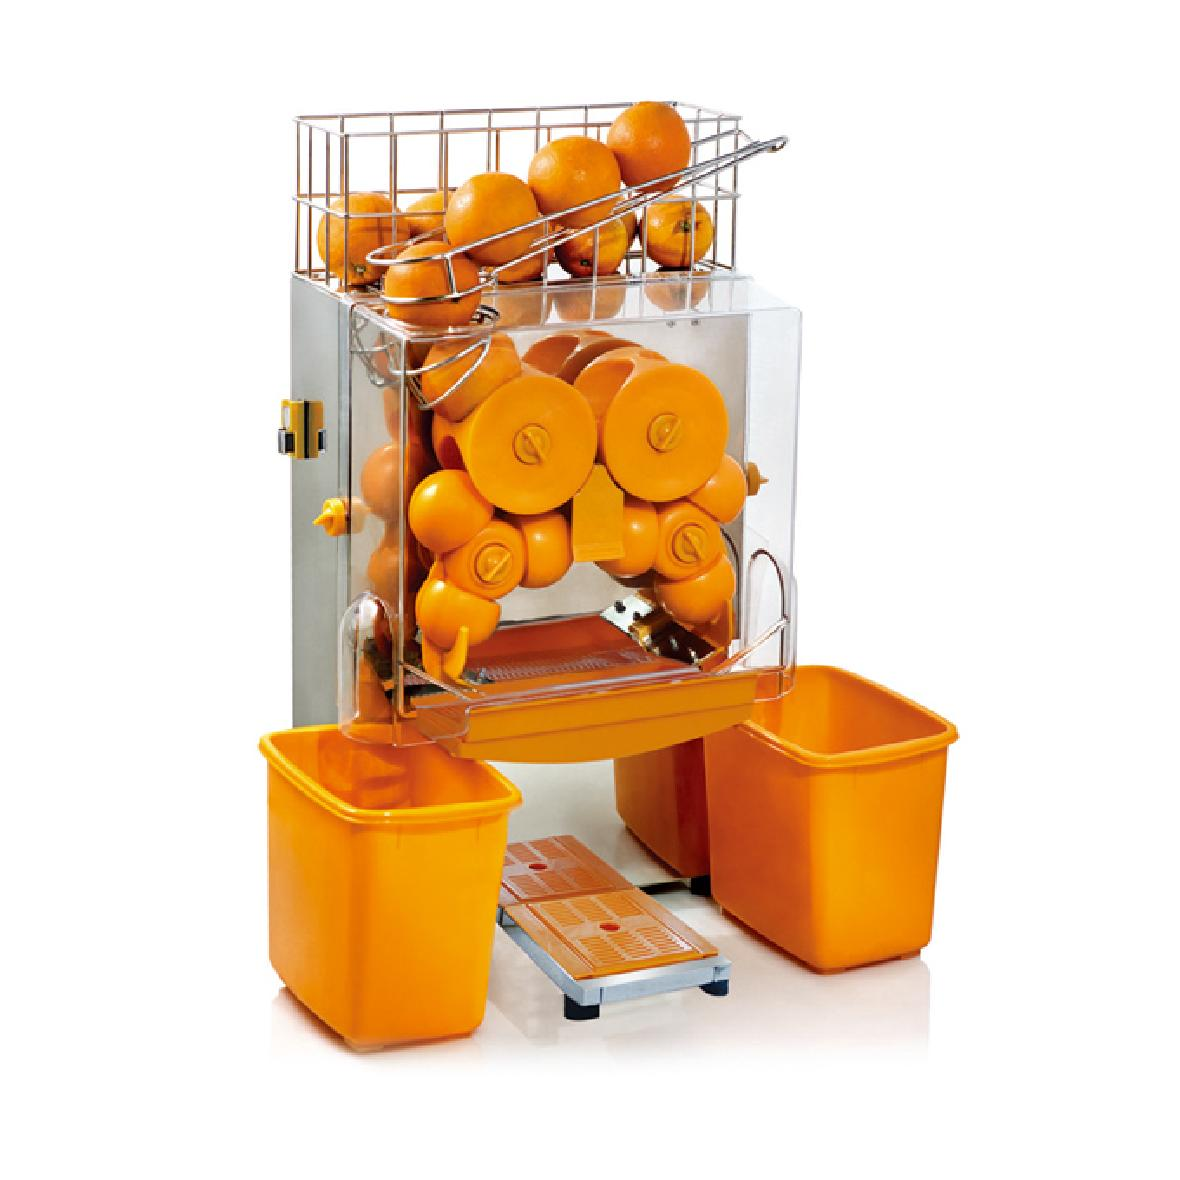 Commercial orange juicer machine